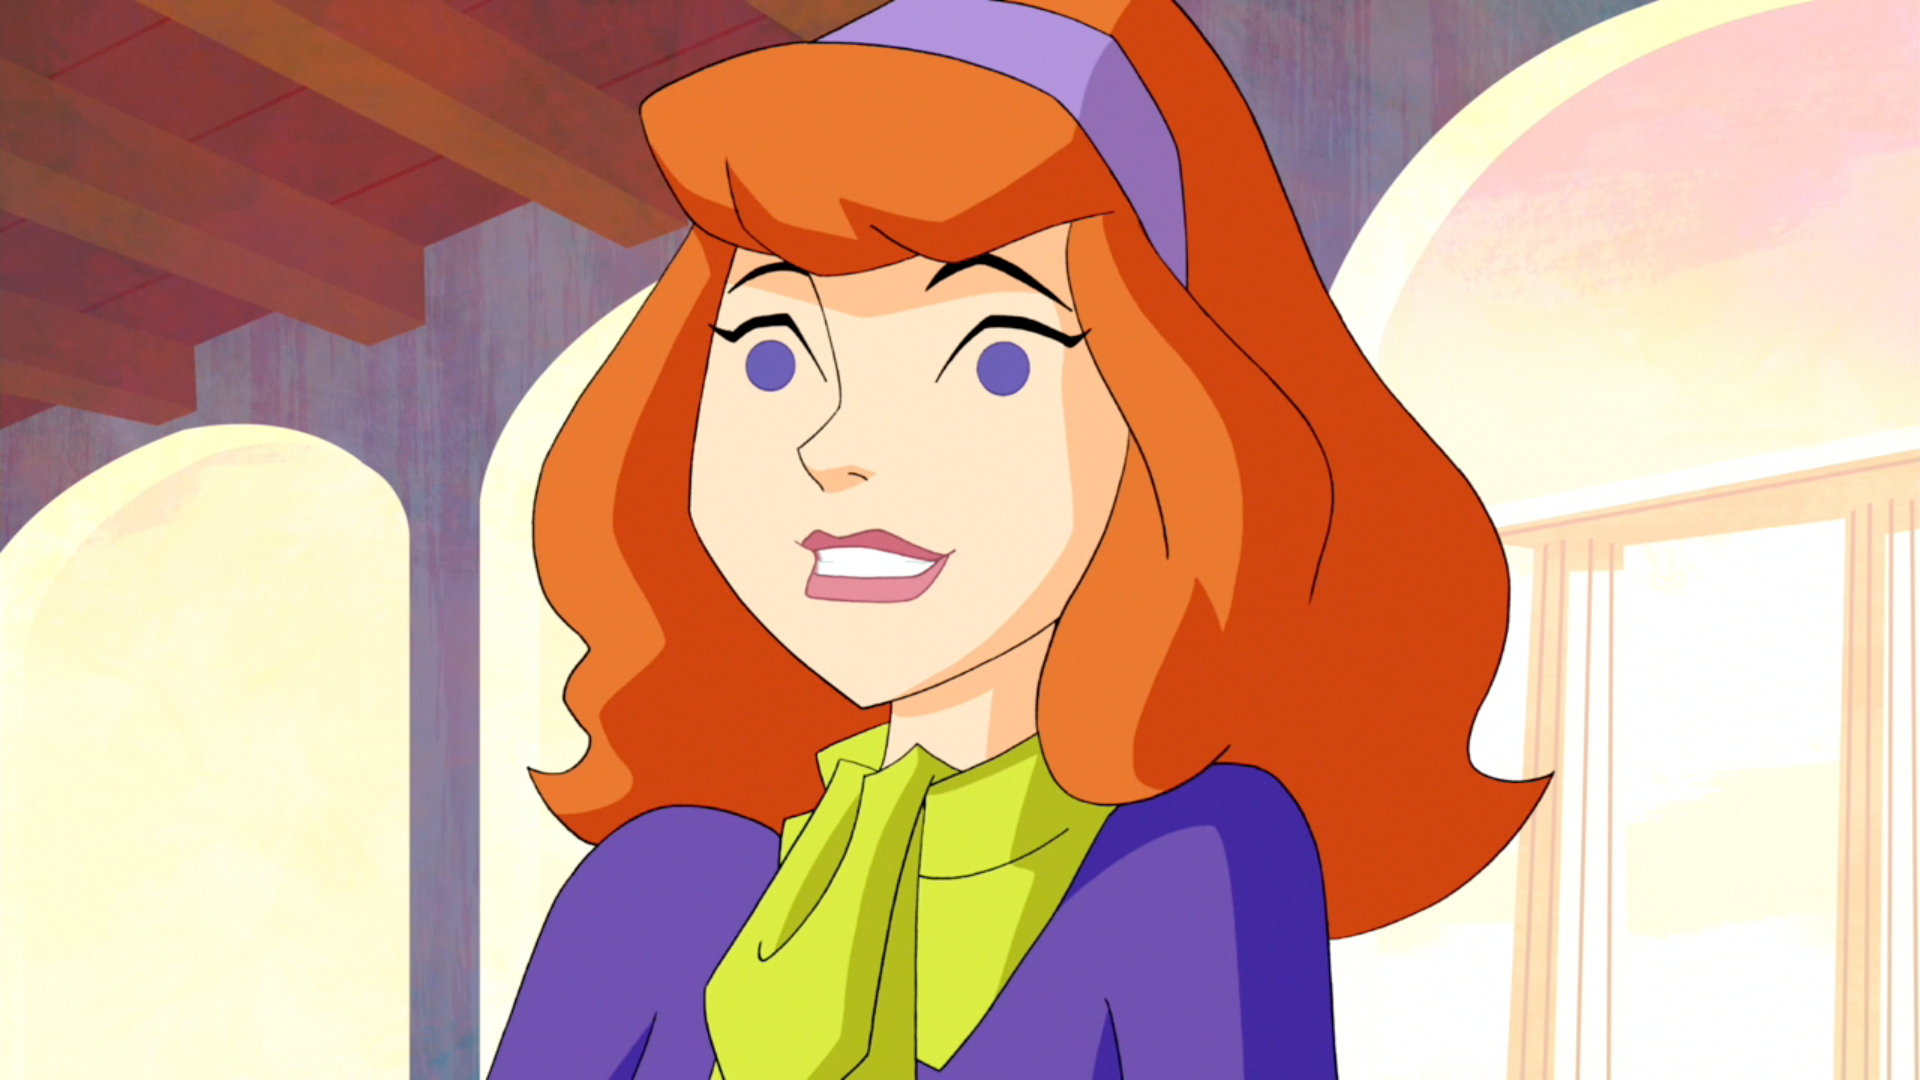 Daphne blake scooby doo mystery incorporated scoobypedia the scooby doo wiki - Scooby doo daphne ...